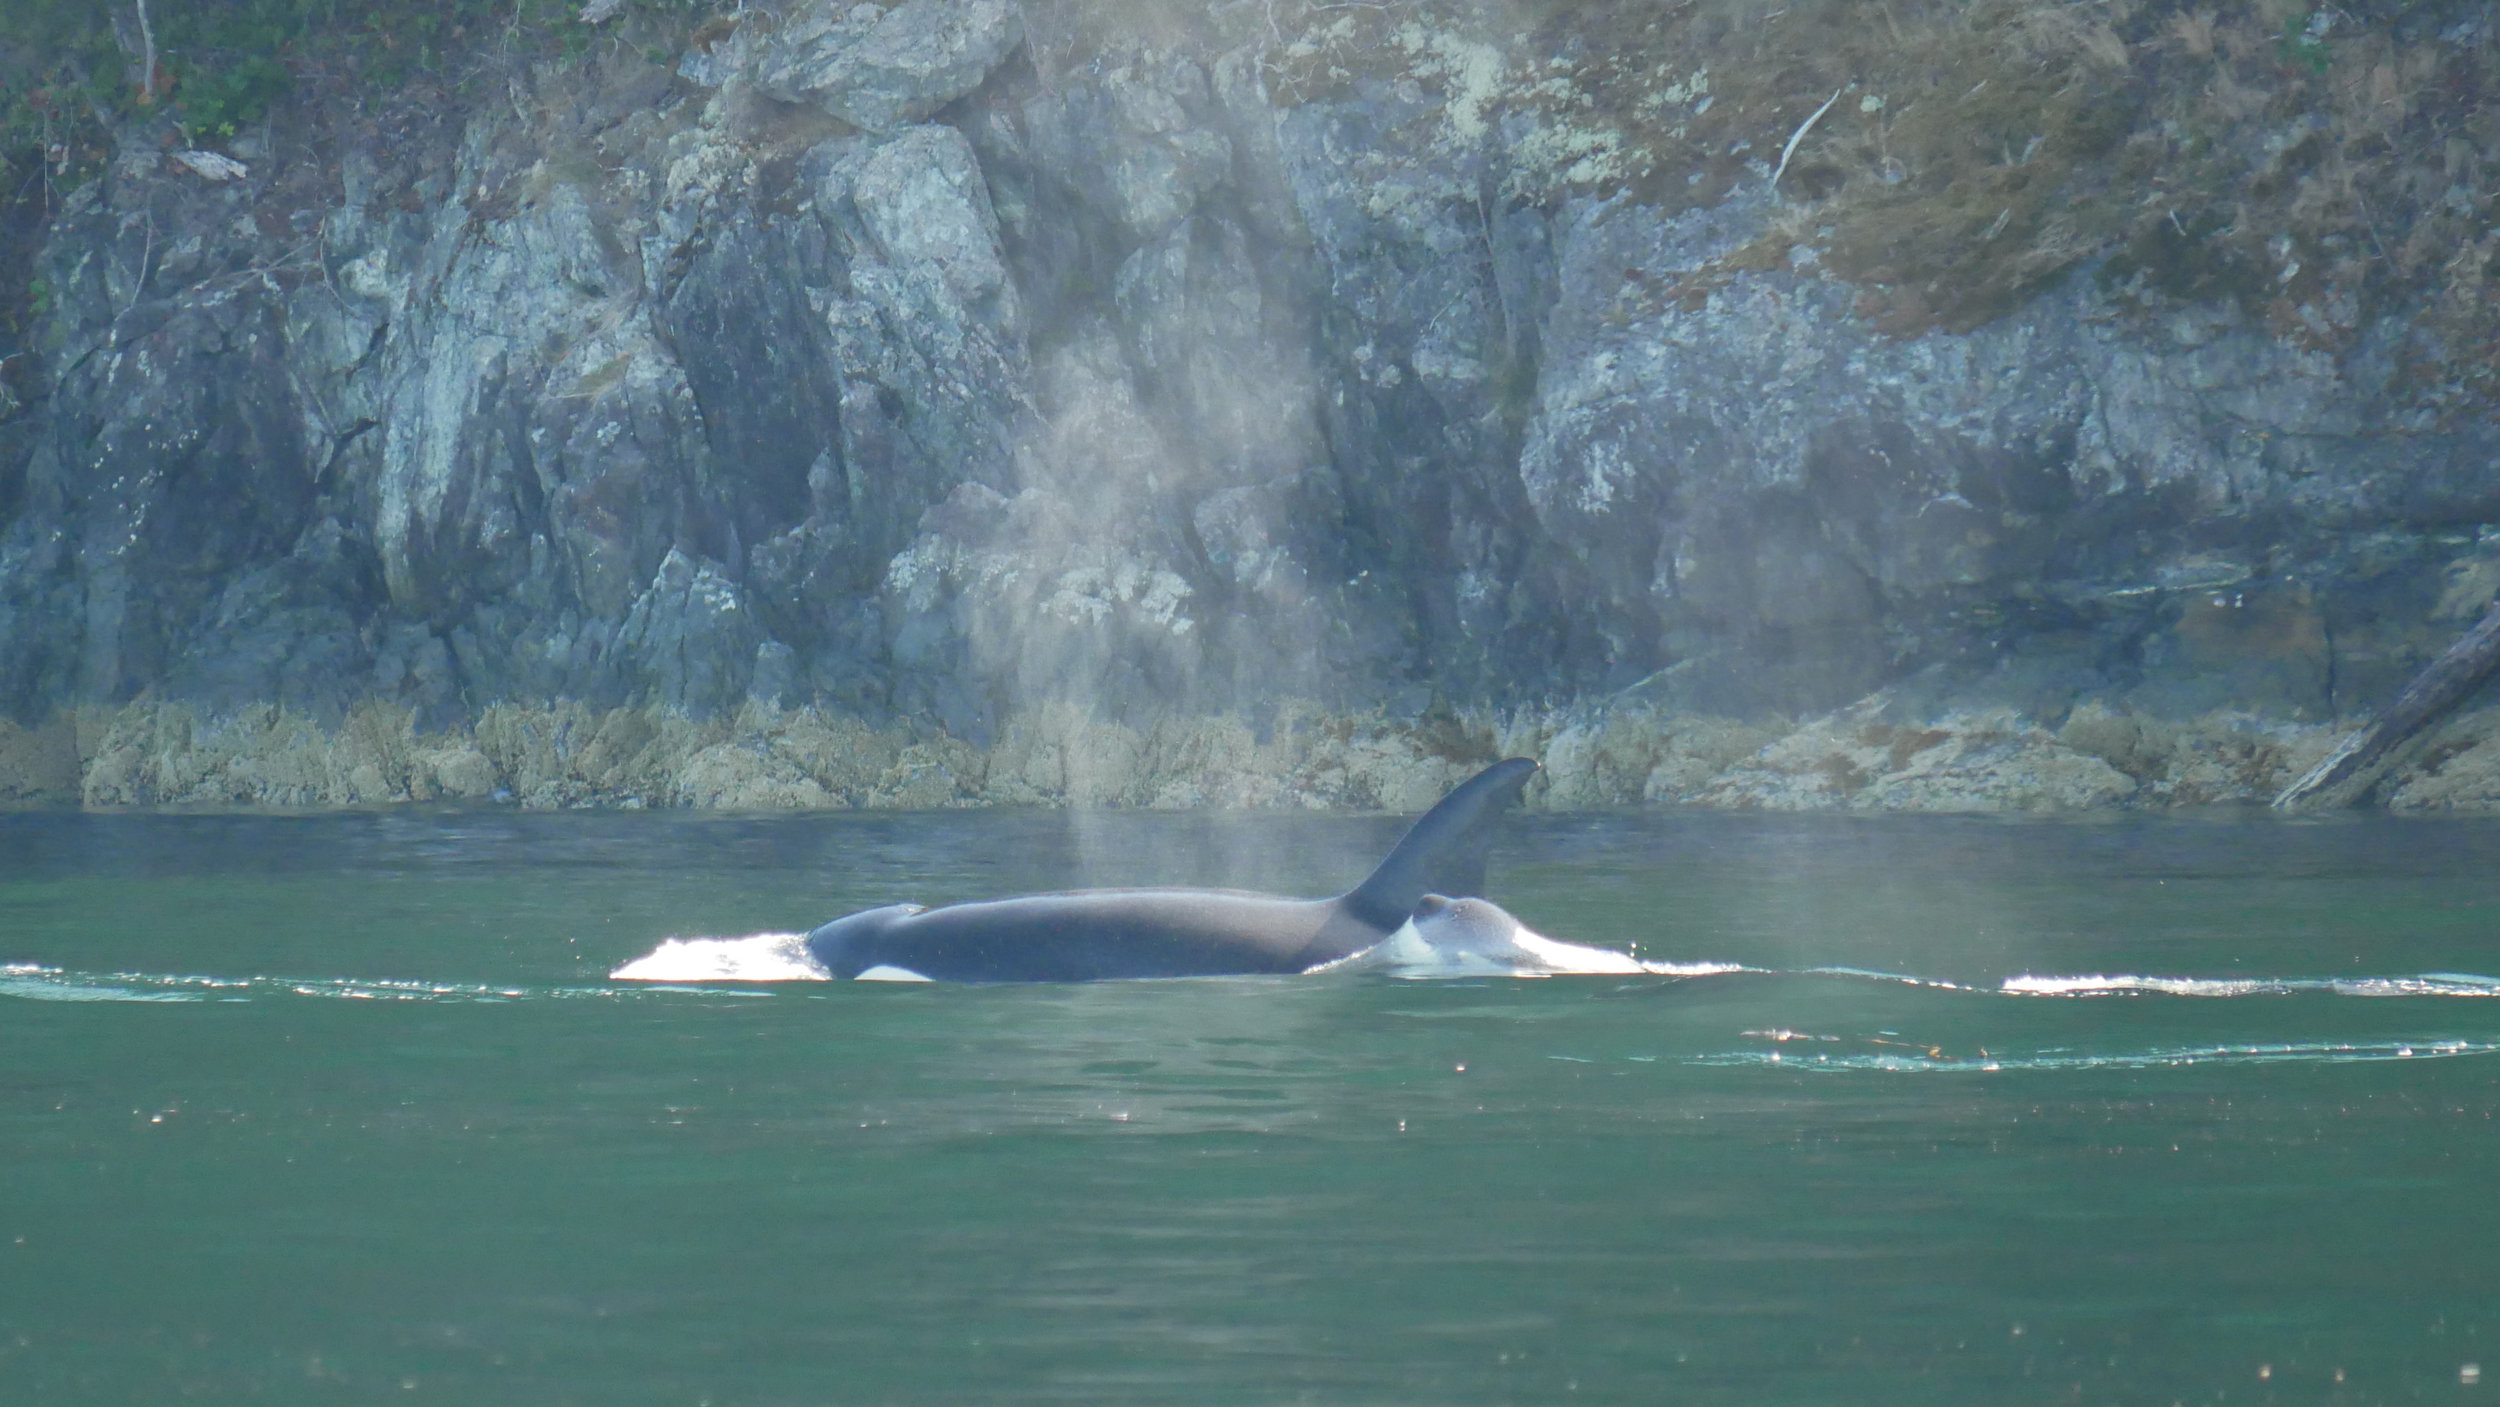 """T036B """"Tattertip"""" and her one year old daughter T036B3 surfacing together. Check out that water tension! Photo by Val Watson."""